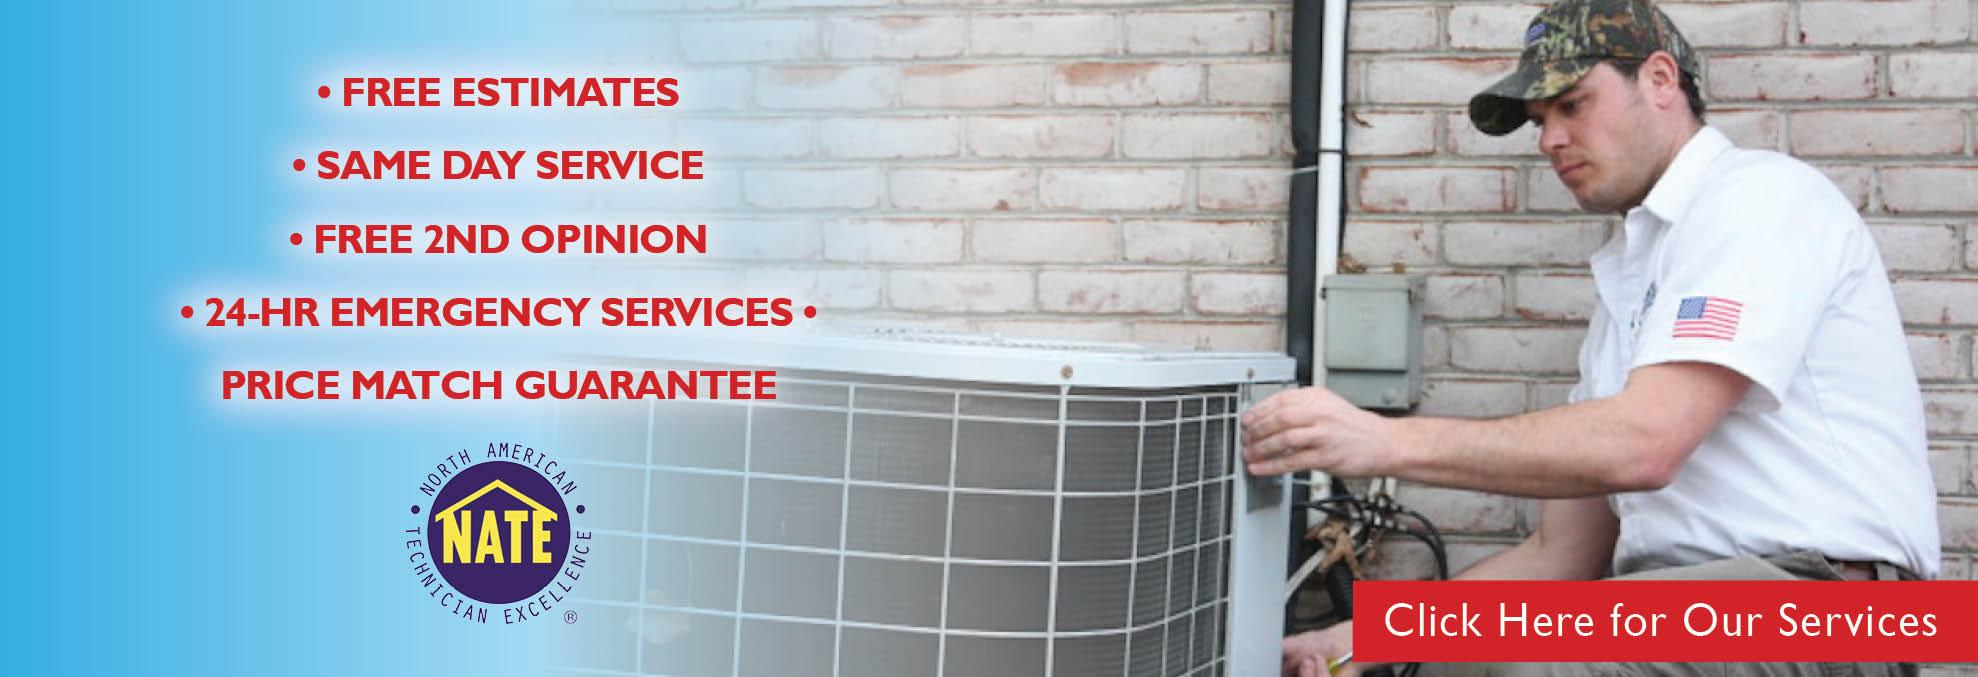 heat ducts, premier hvac services, air conditioner, heating, boilers, air quality, heaters, lennox